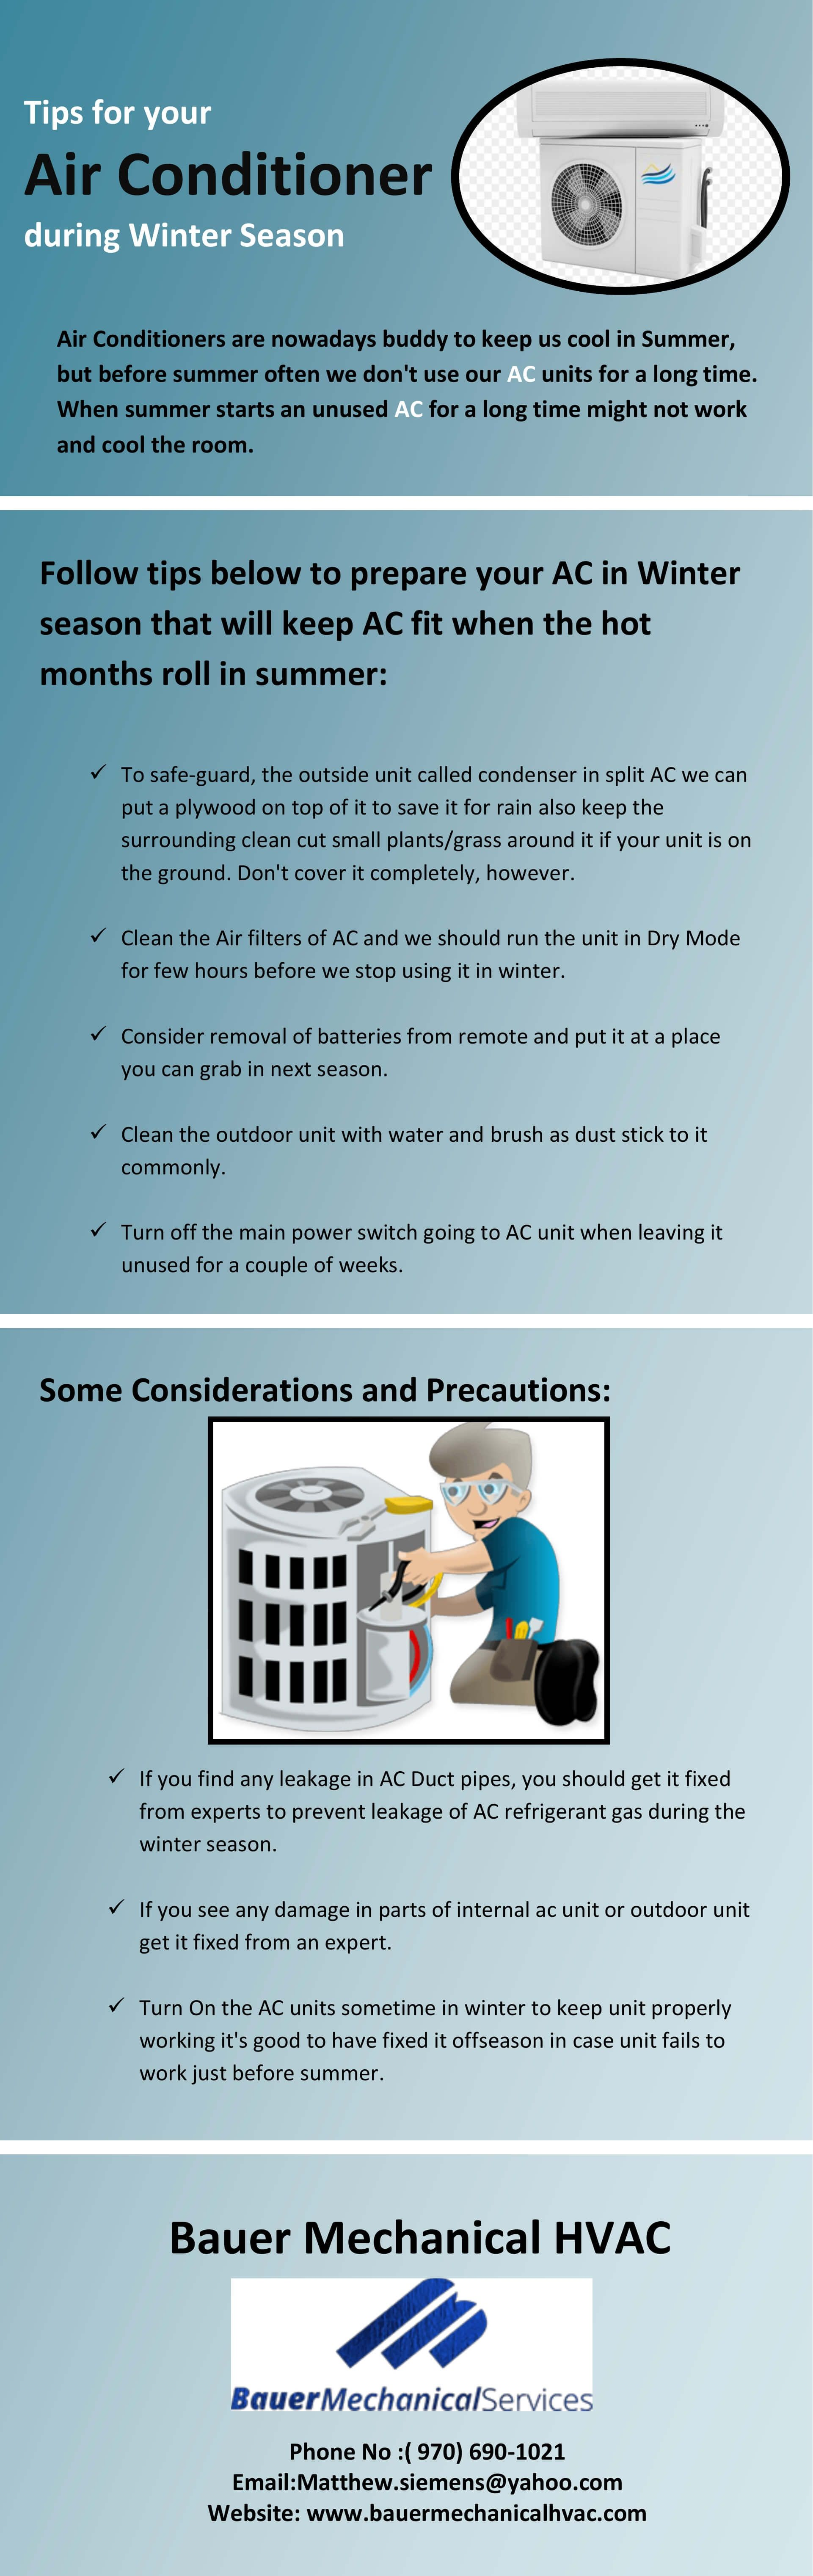 Tips for your Air Conditioner during Winter Season Air